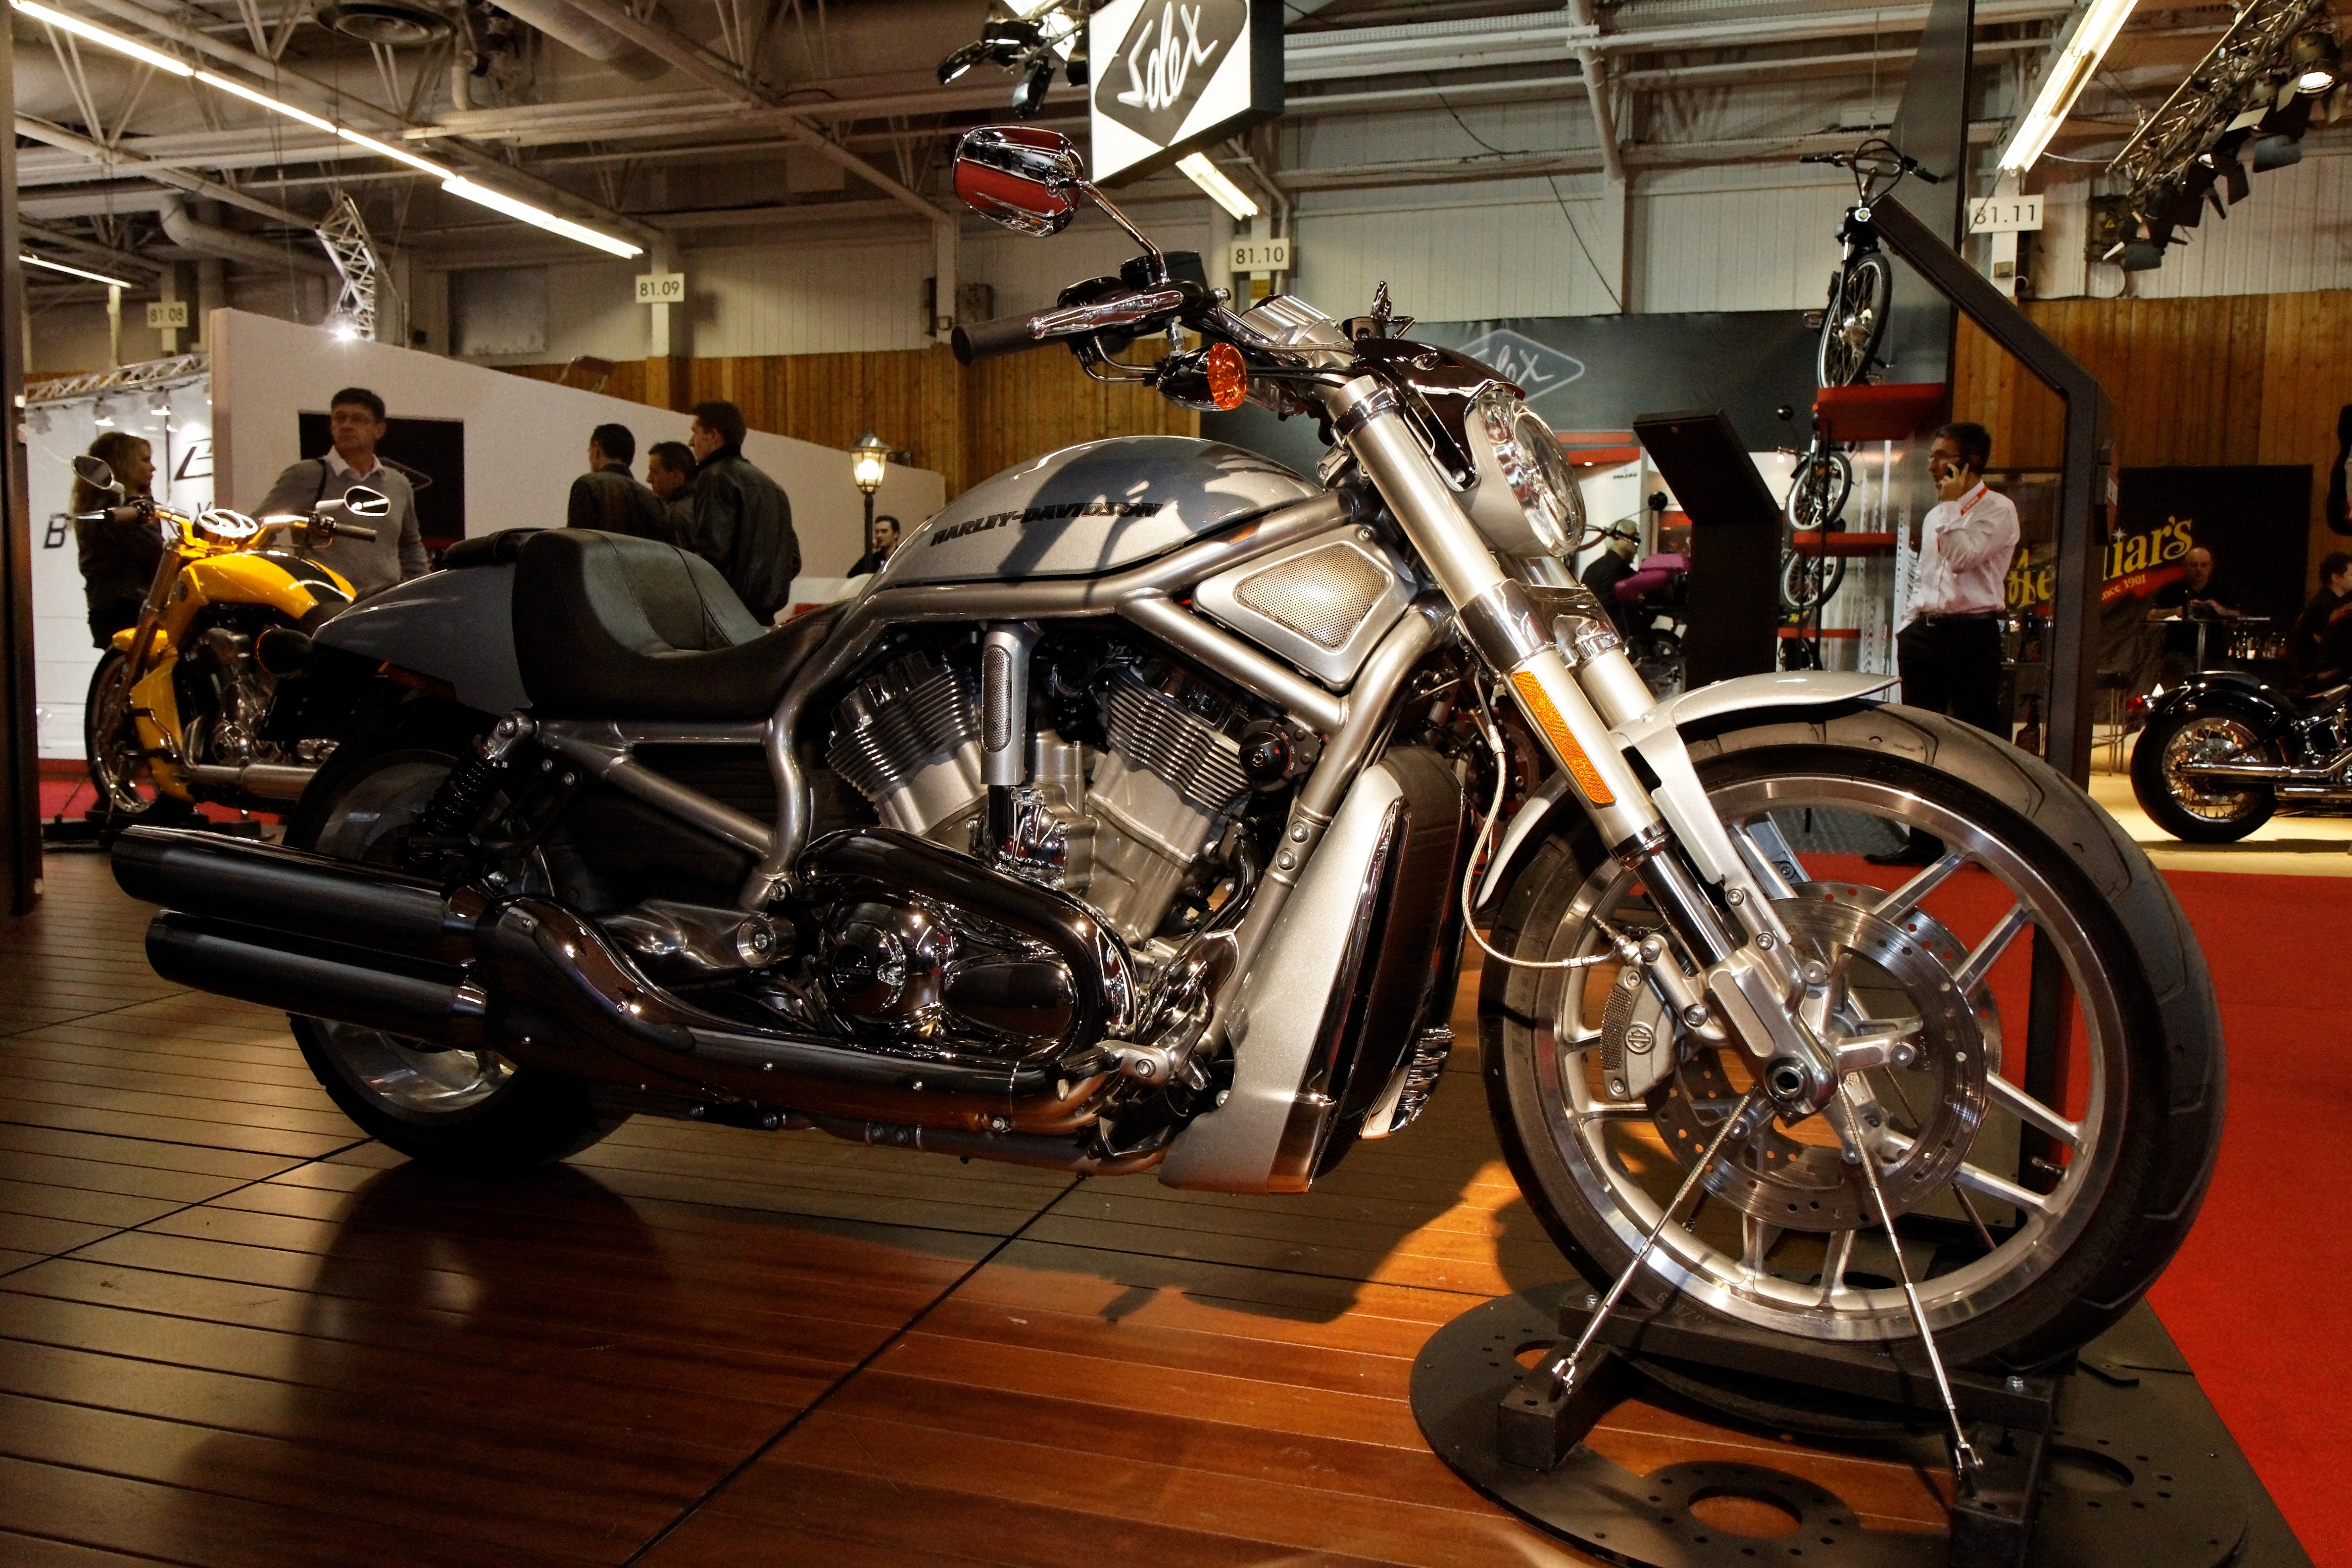 File:Paris - Salon de la moto 6 - Harley-Davidson - V-Rod - 6